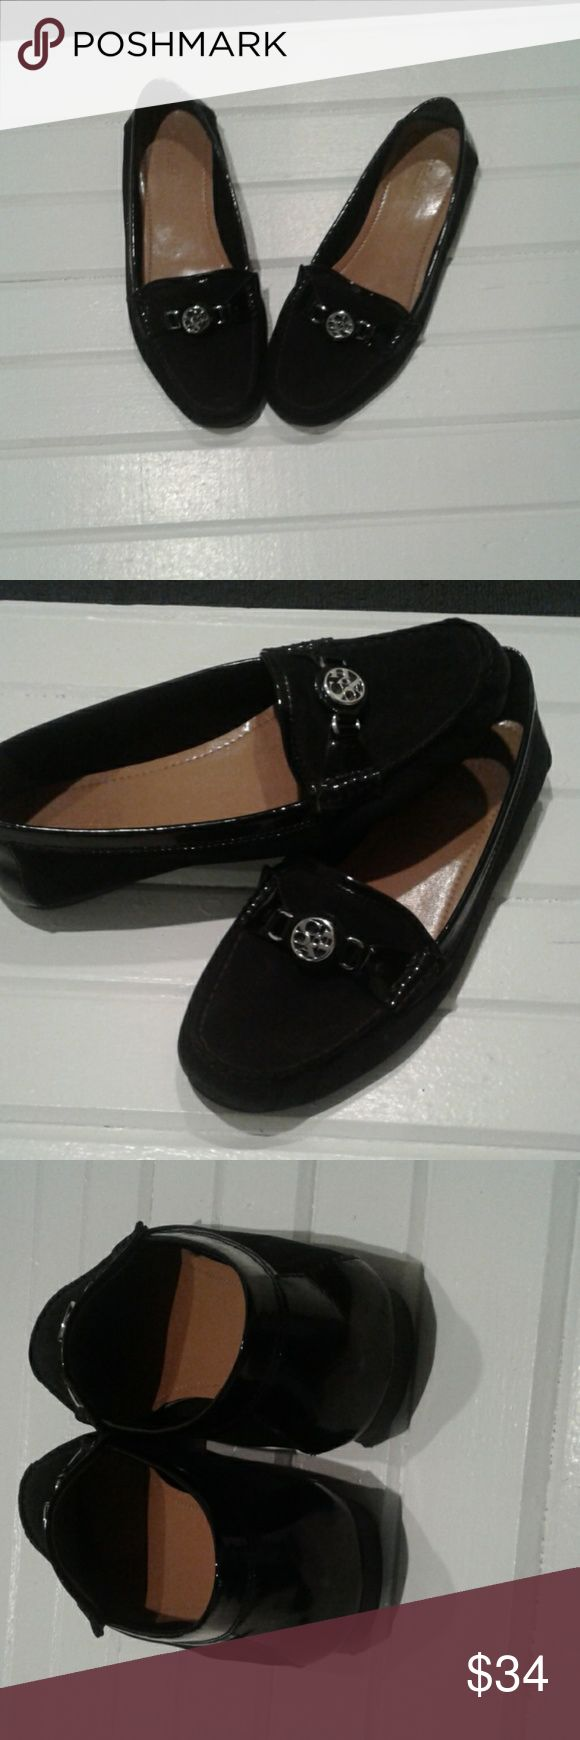 Coach ladies black suede loafers 9M